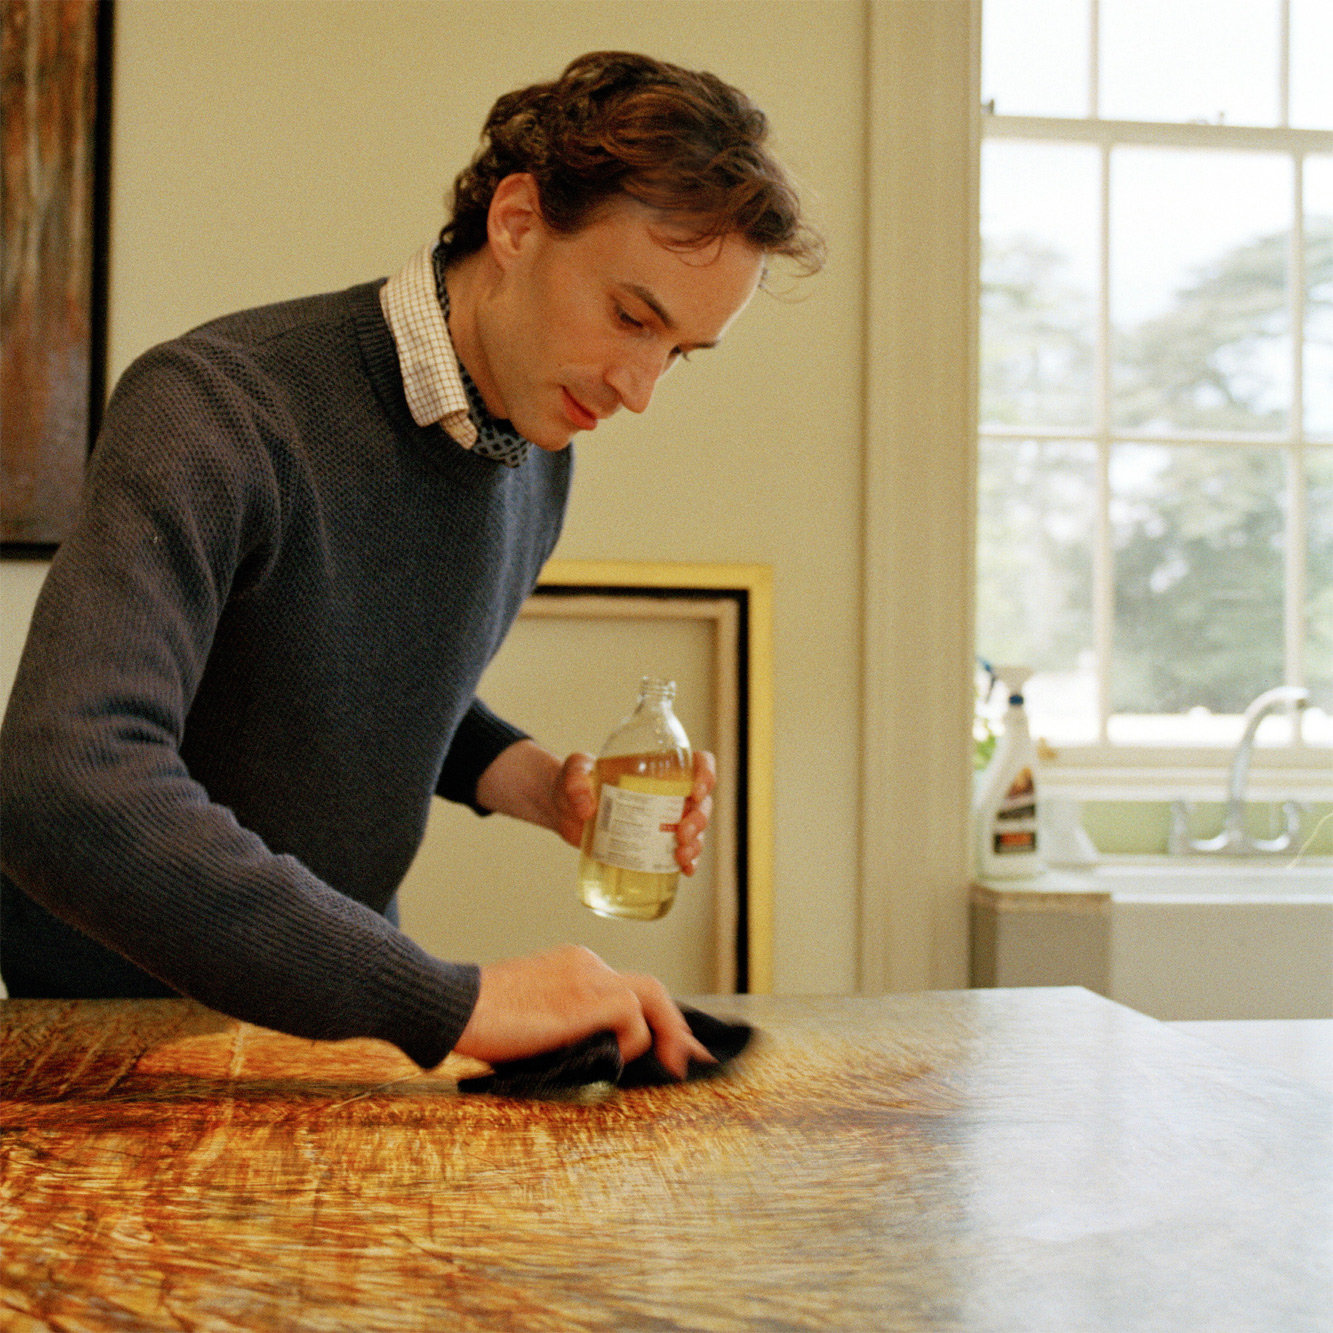 Polishing with Renaissance Wax. Egg Tempera paintings have their own innate luster which the wax protects and brings out.